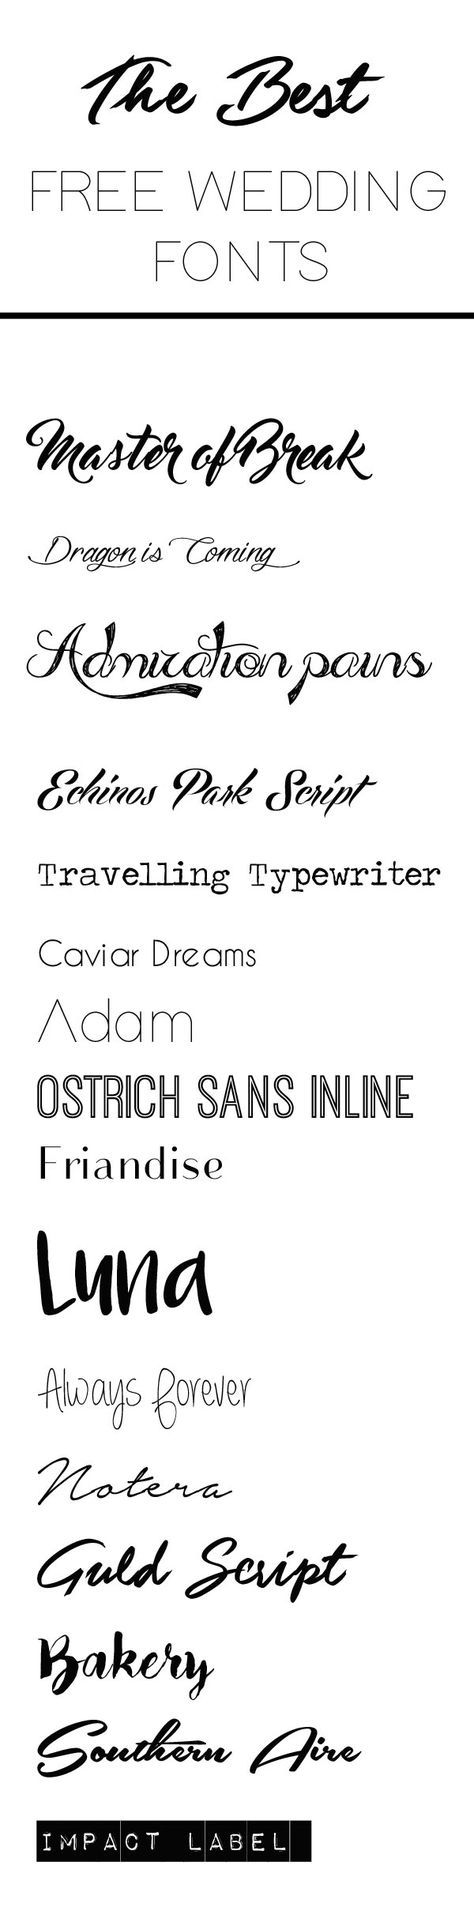 The Best Free Wedding Fonts - free download - put together by The Wedding Of My Dreams